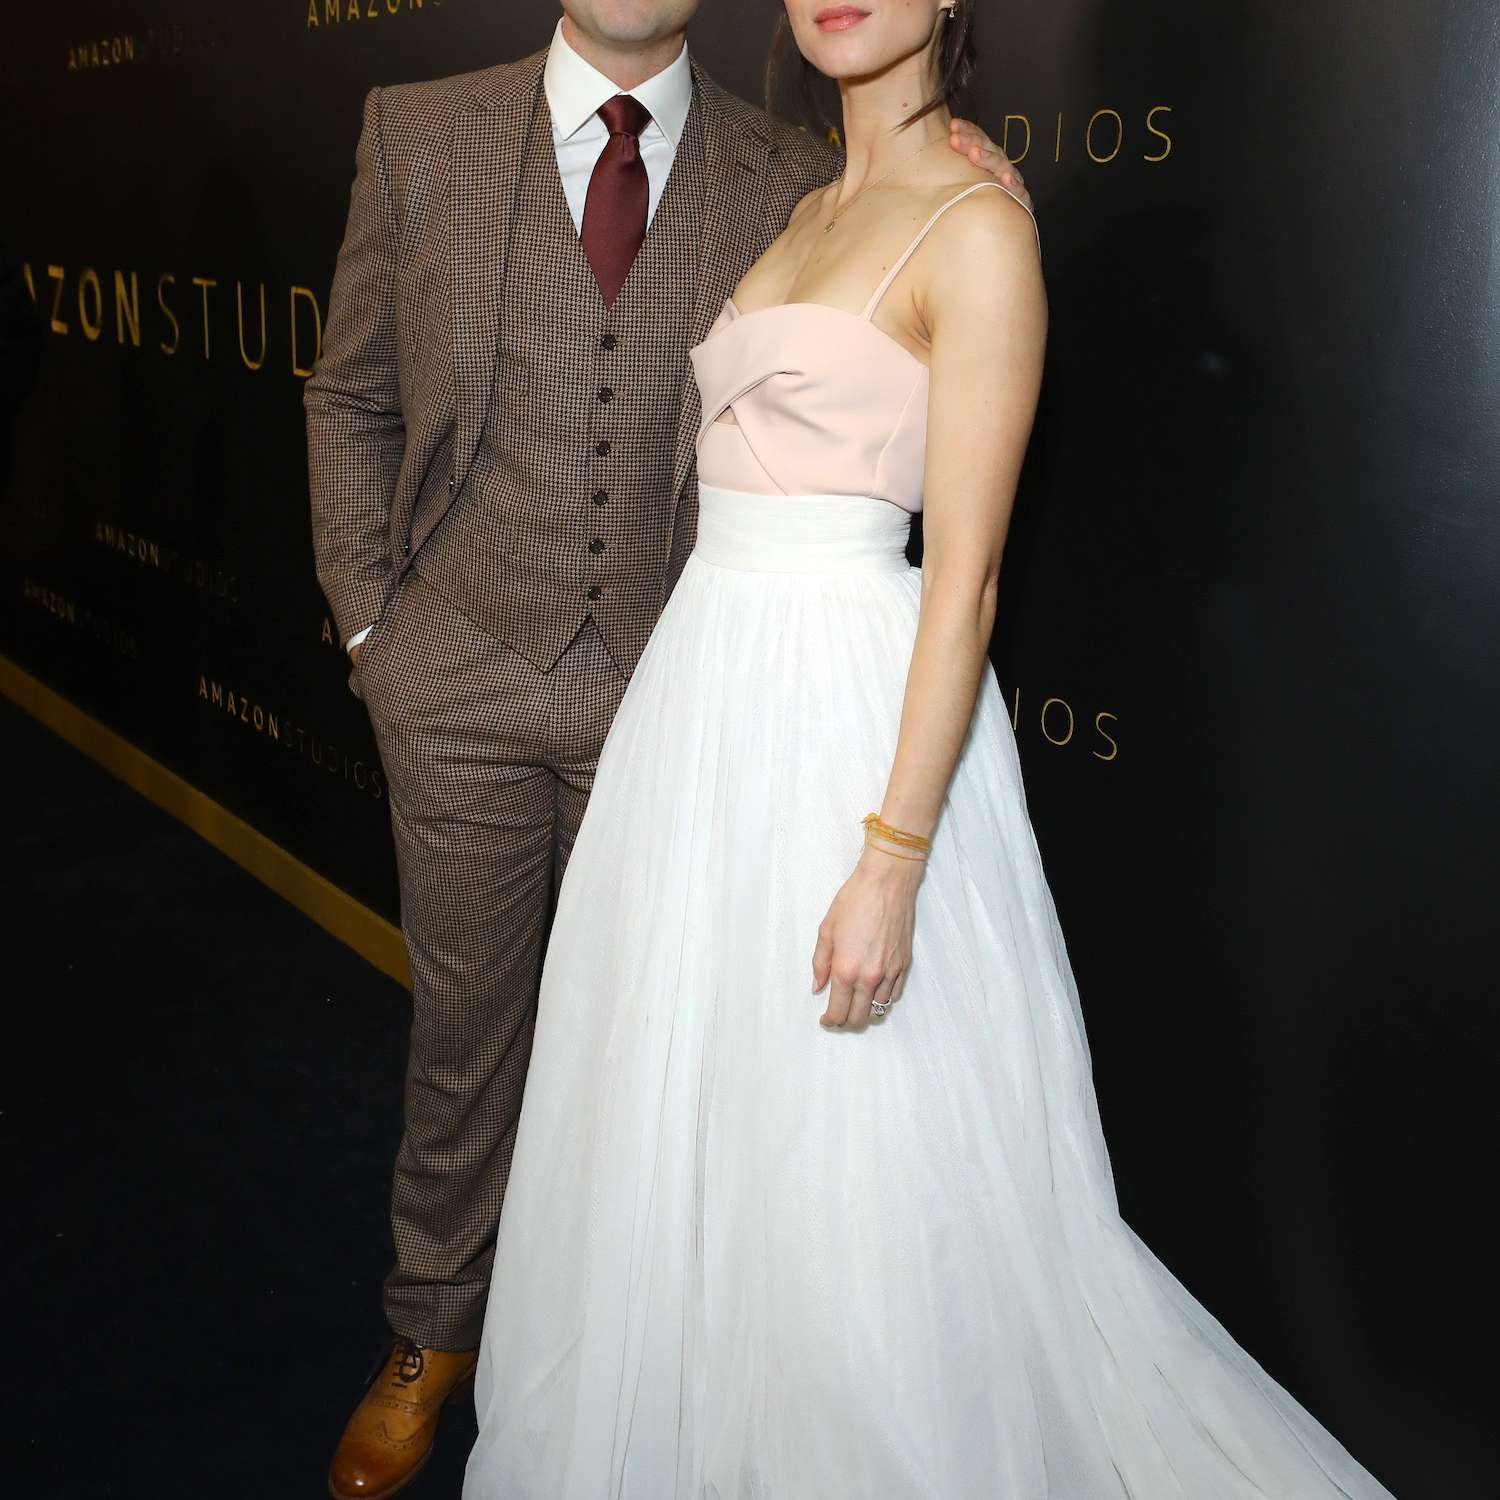 Patrick Adams and Troian Bellisario attend a Golden Globes afterparty.